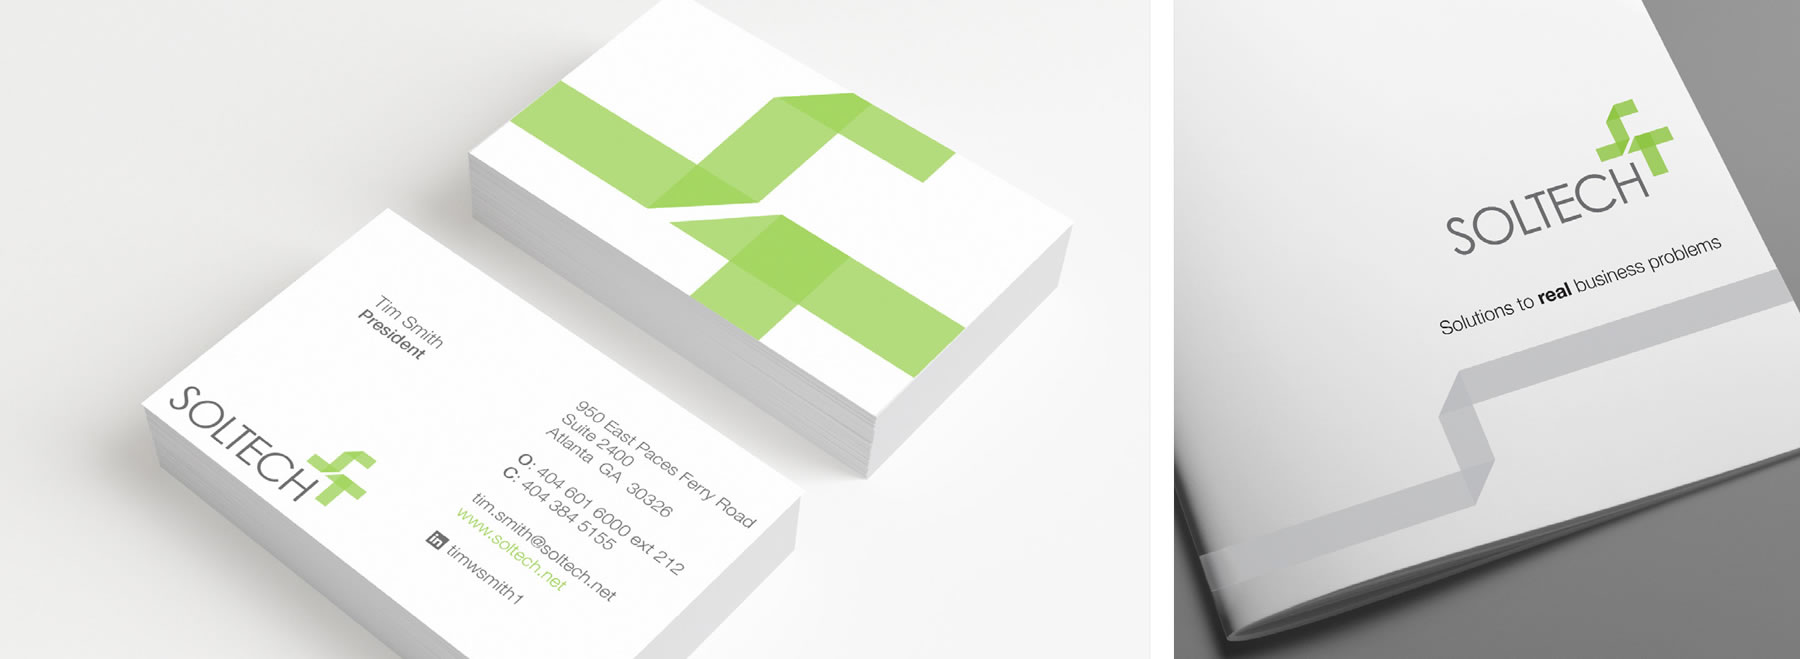 SolTech Business Cards and Letterhead